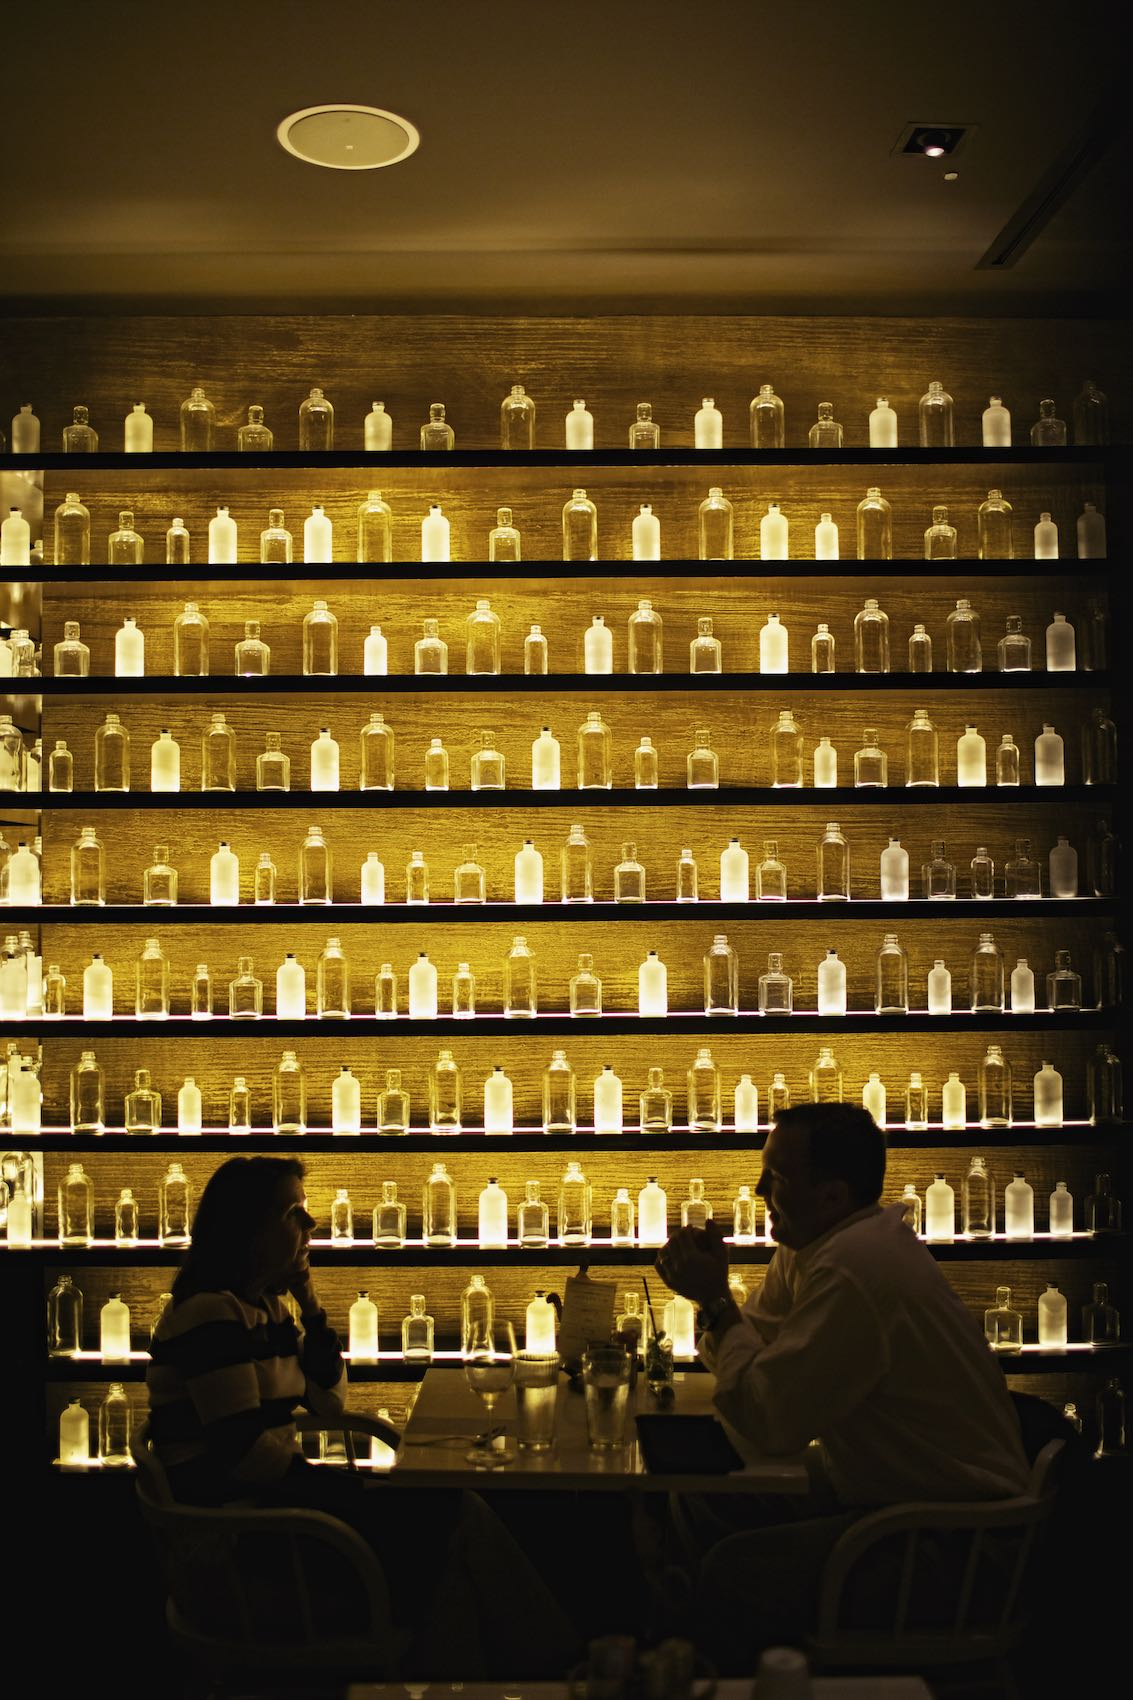 Jody Horton Photography - Profiles of guests against brightly lit New Orleans bottle wall.